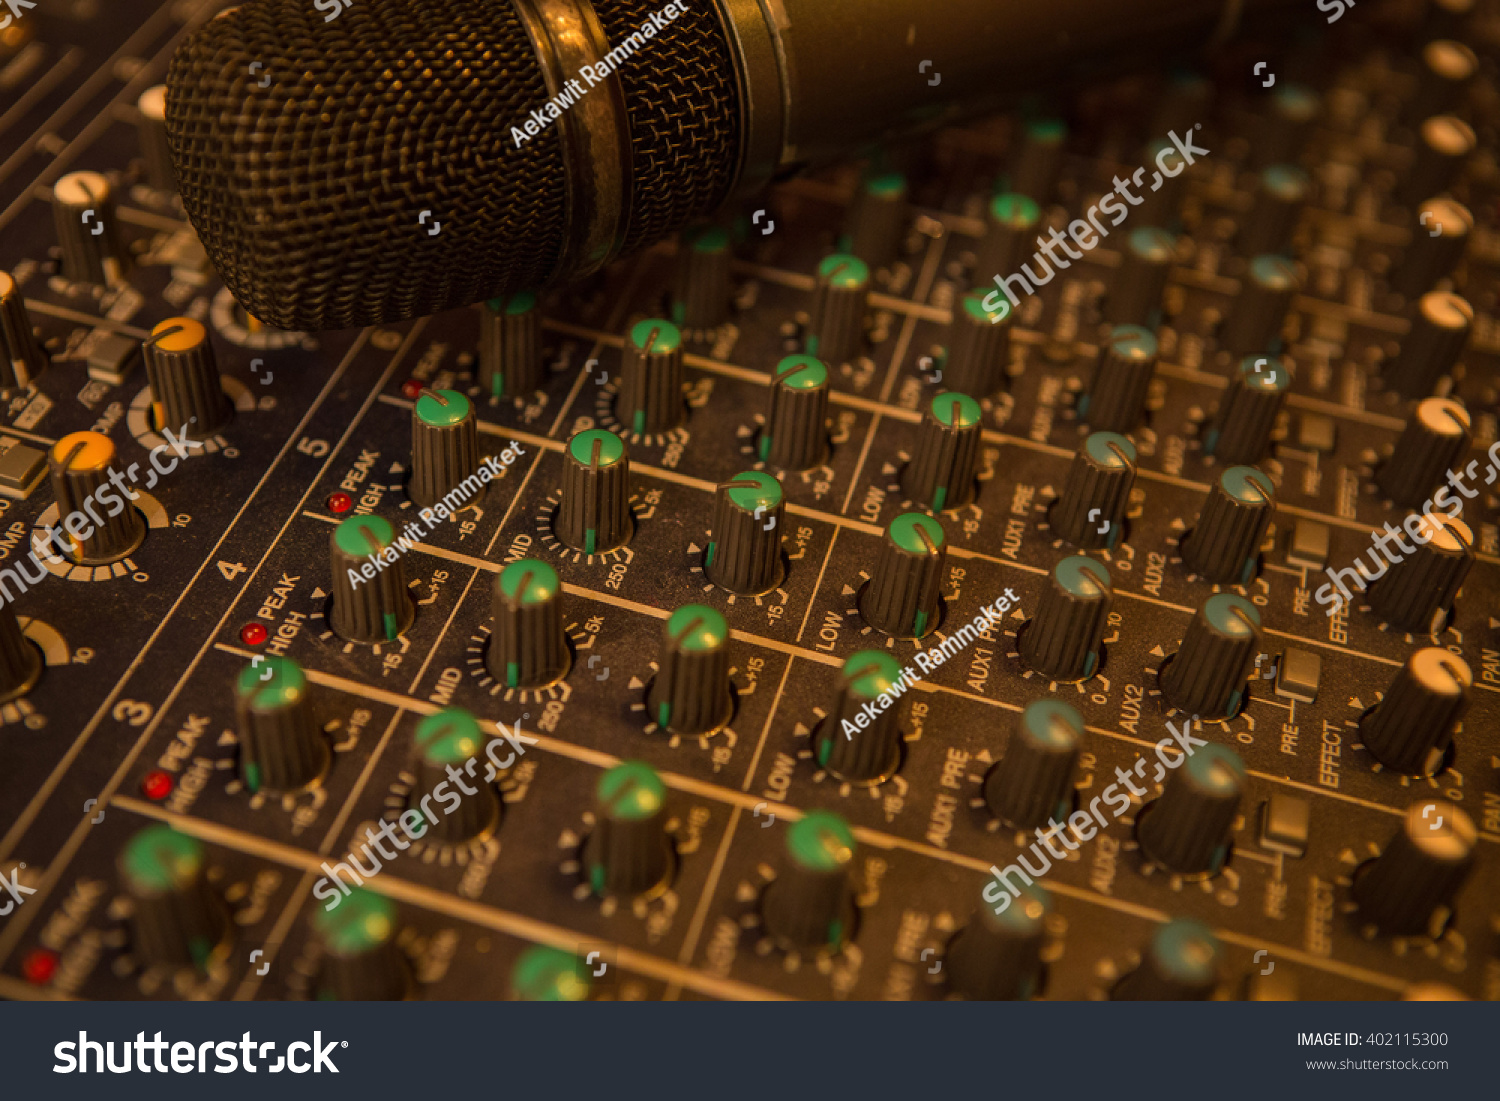 Microphone Audio Mixer Background Stock Photo Edit Now 402115300 Mic Circuit And